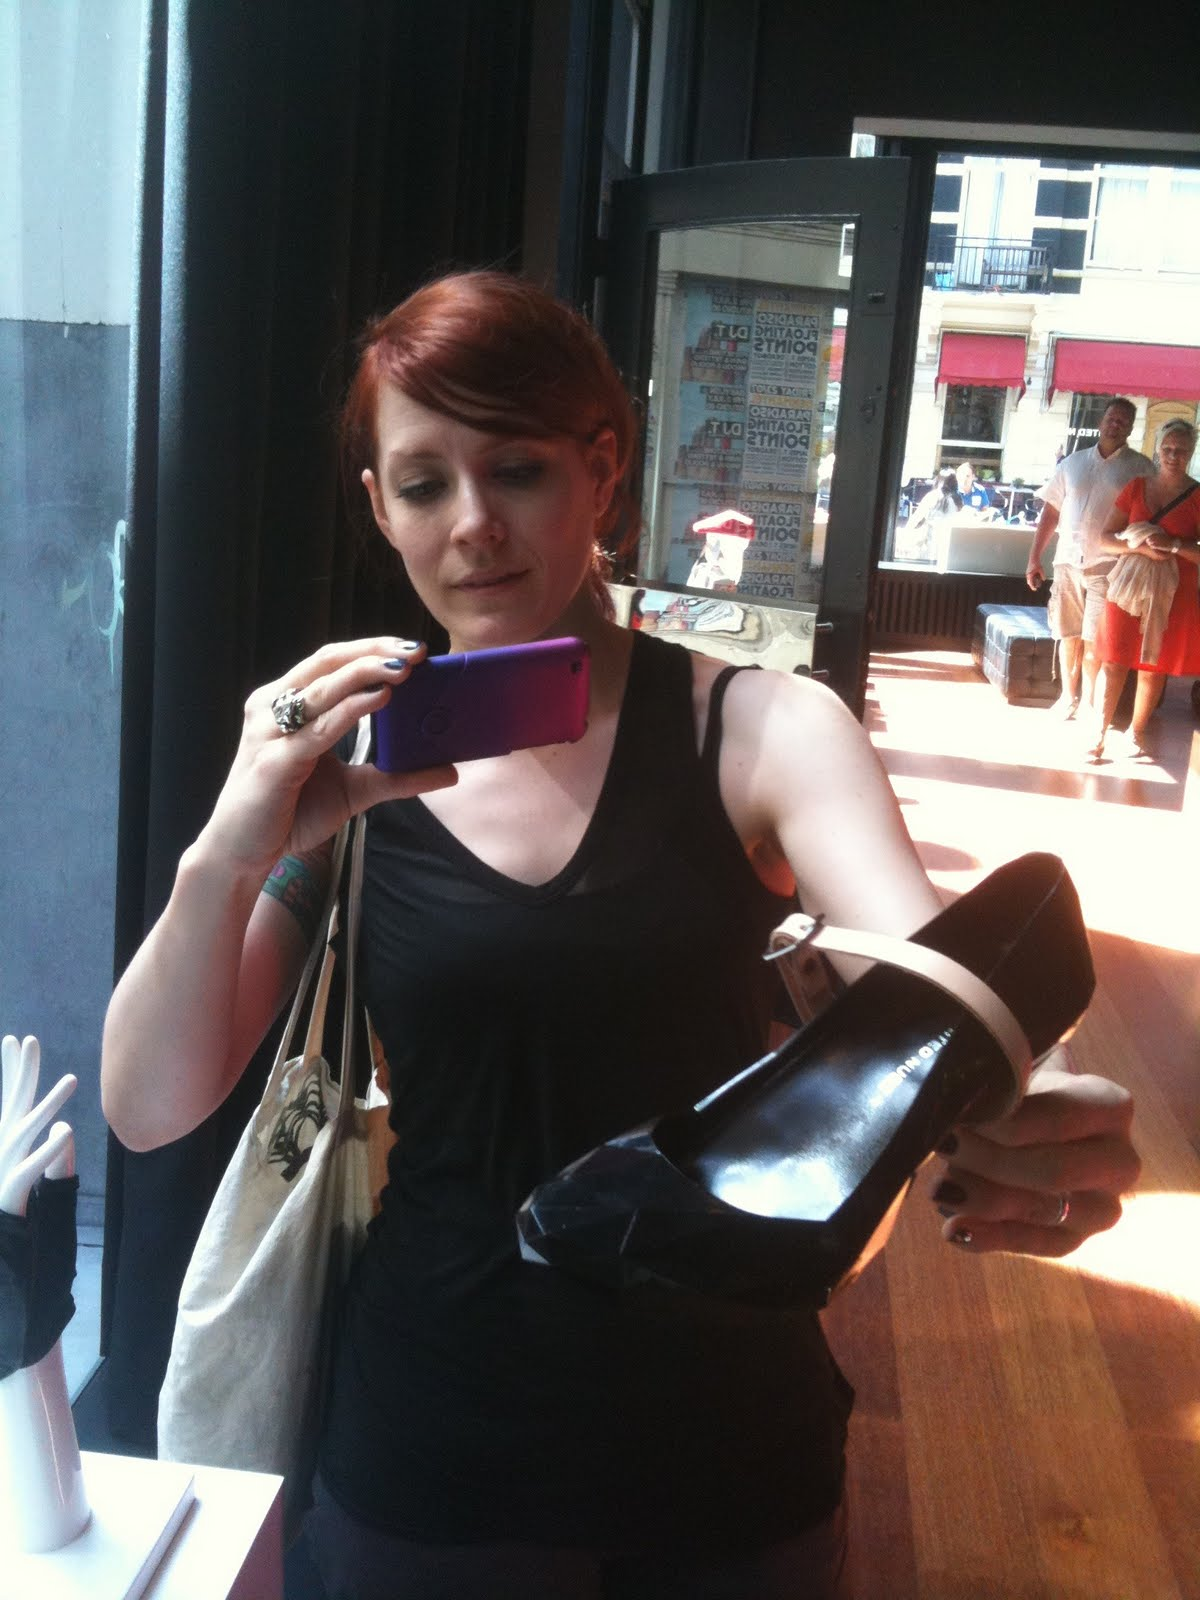 Singer Ana Matronic from the Scissor Sisters @ the United Nude store ...